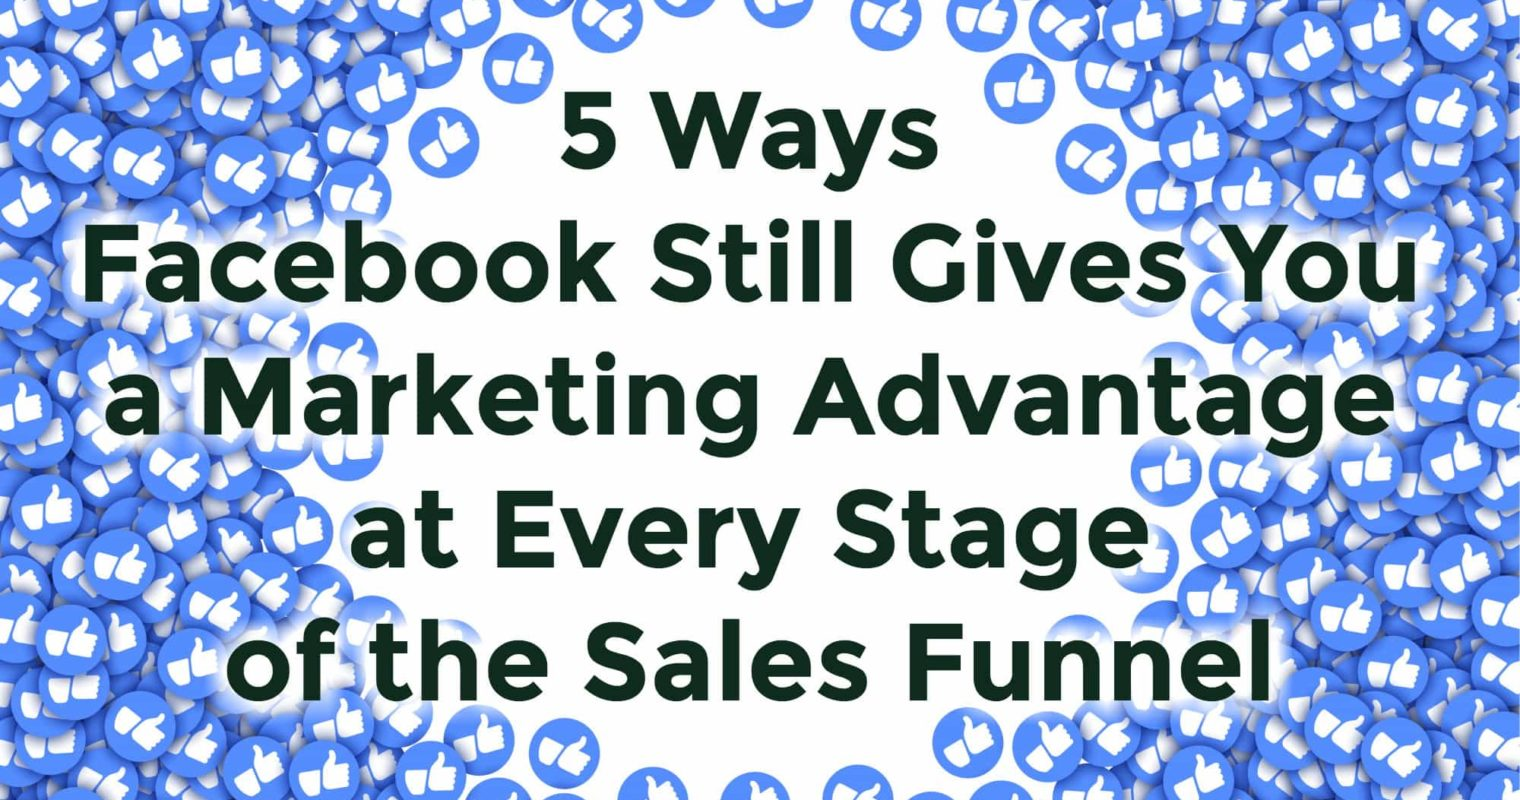 Top 5 Advantages of Facebook Marketing for Your Business